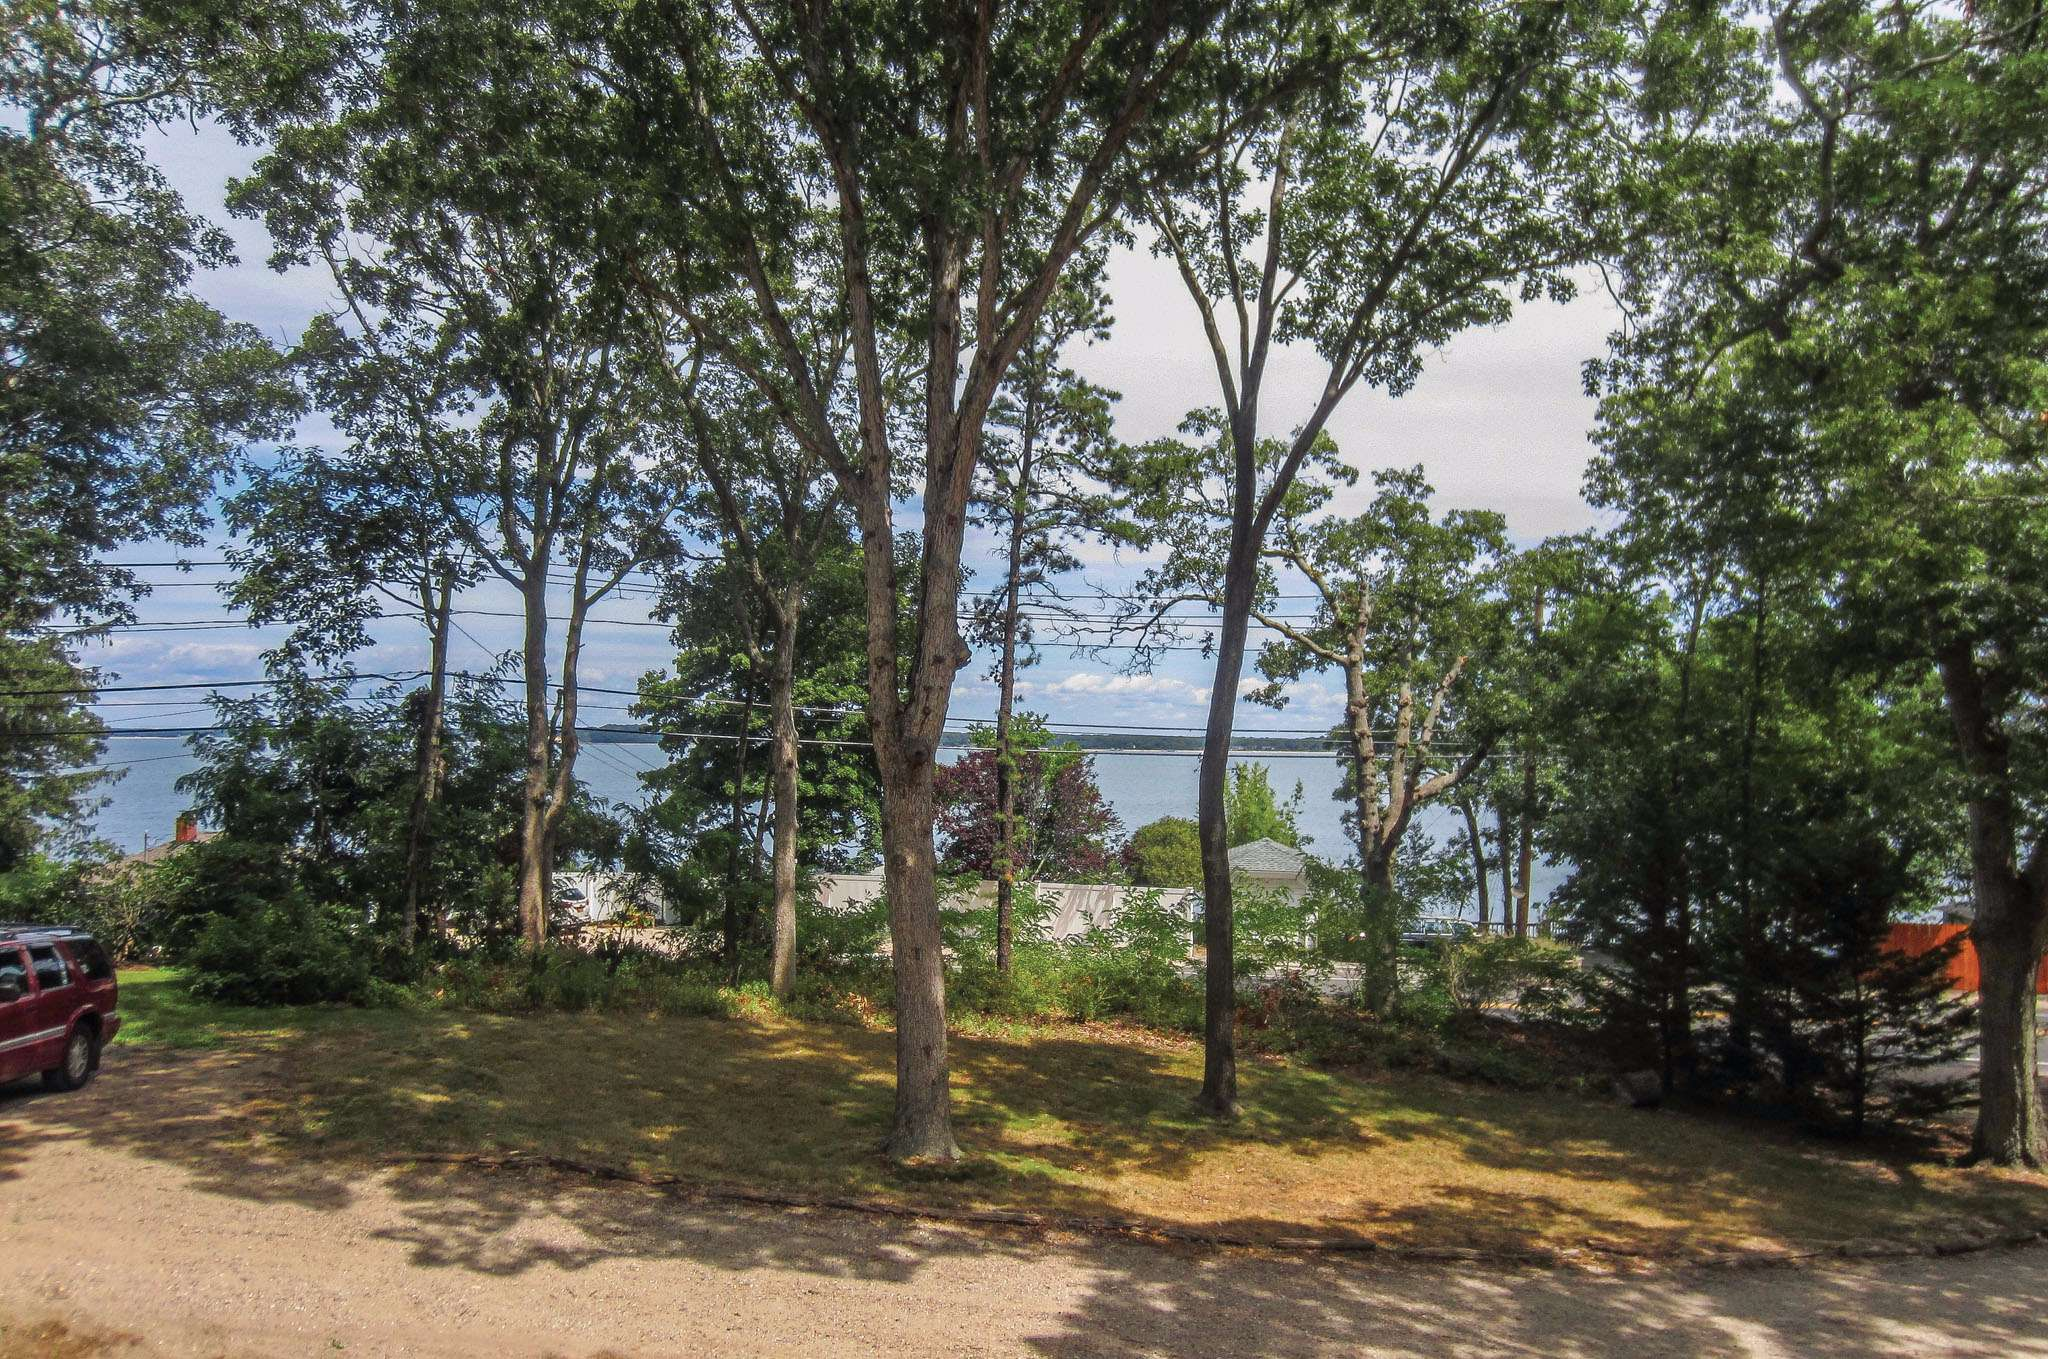 Single Family Home for Sale at Sag Harbor Cottage With Noyac Bay View 3618 Noyac Road, Sag Harbor, New York